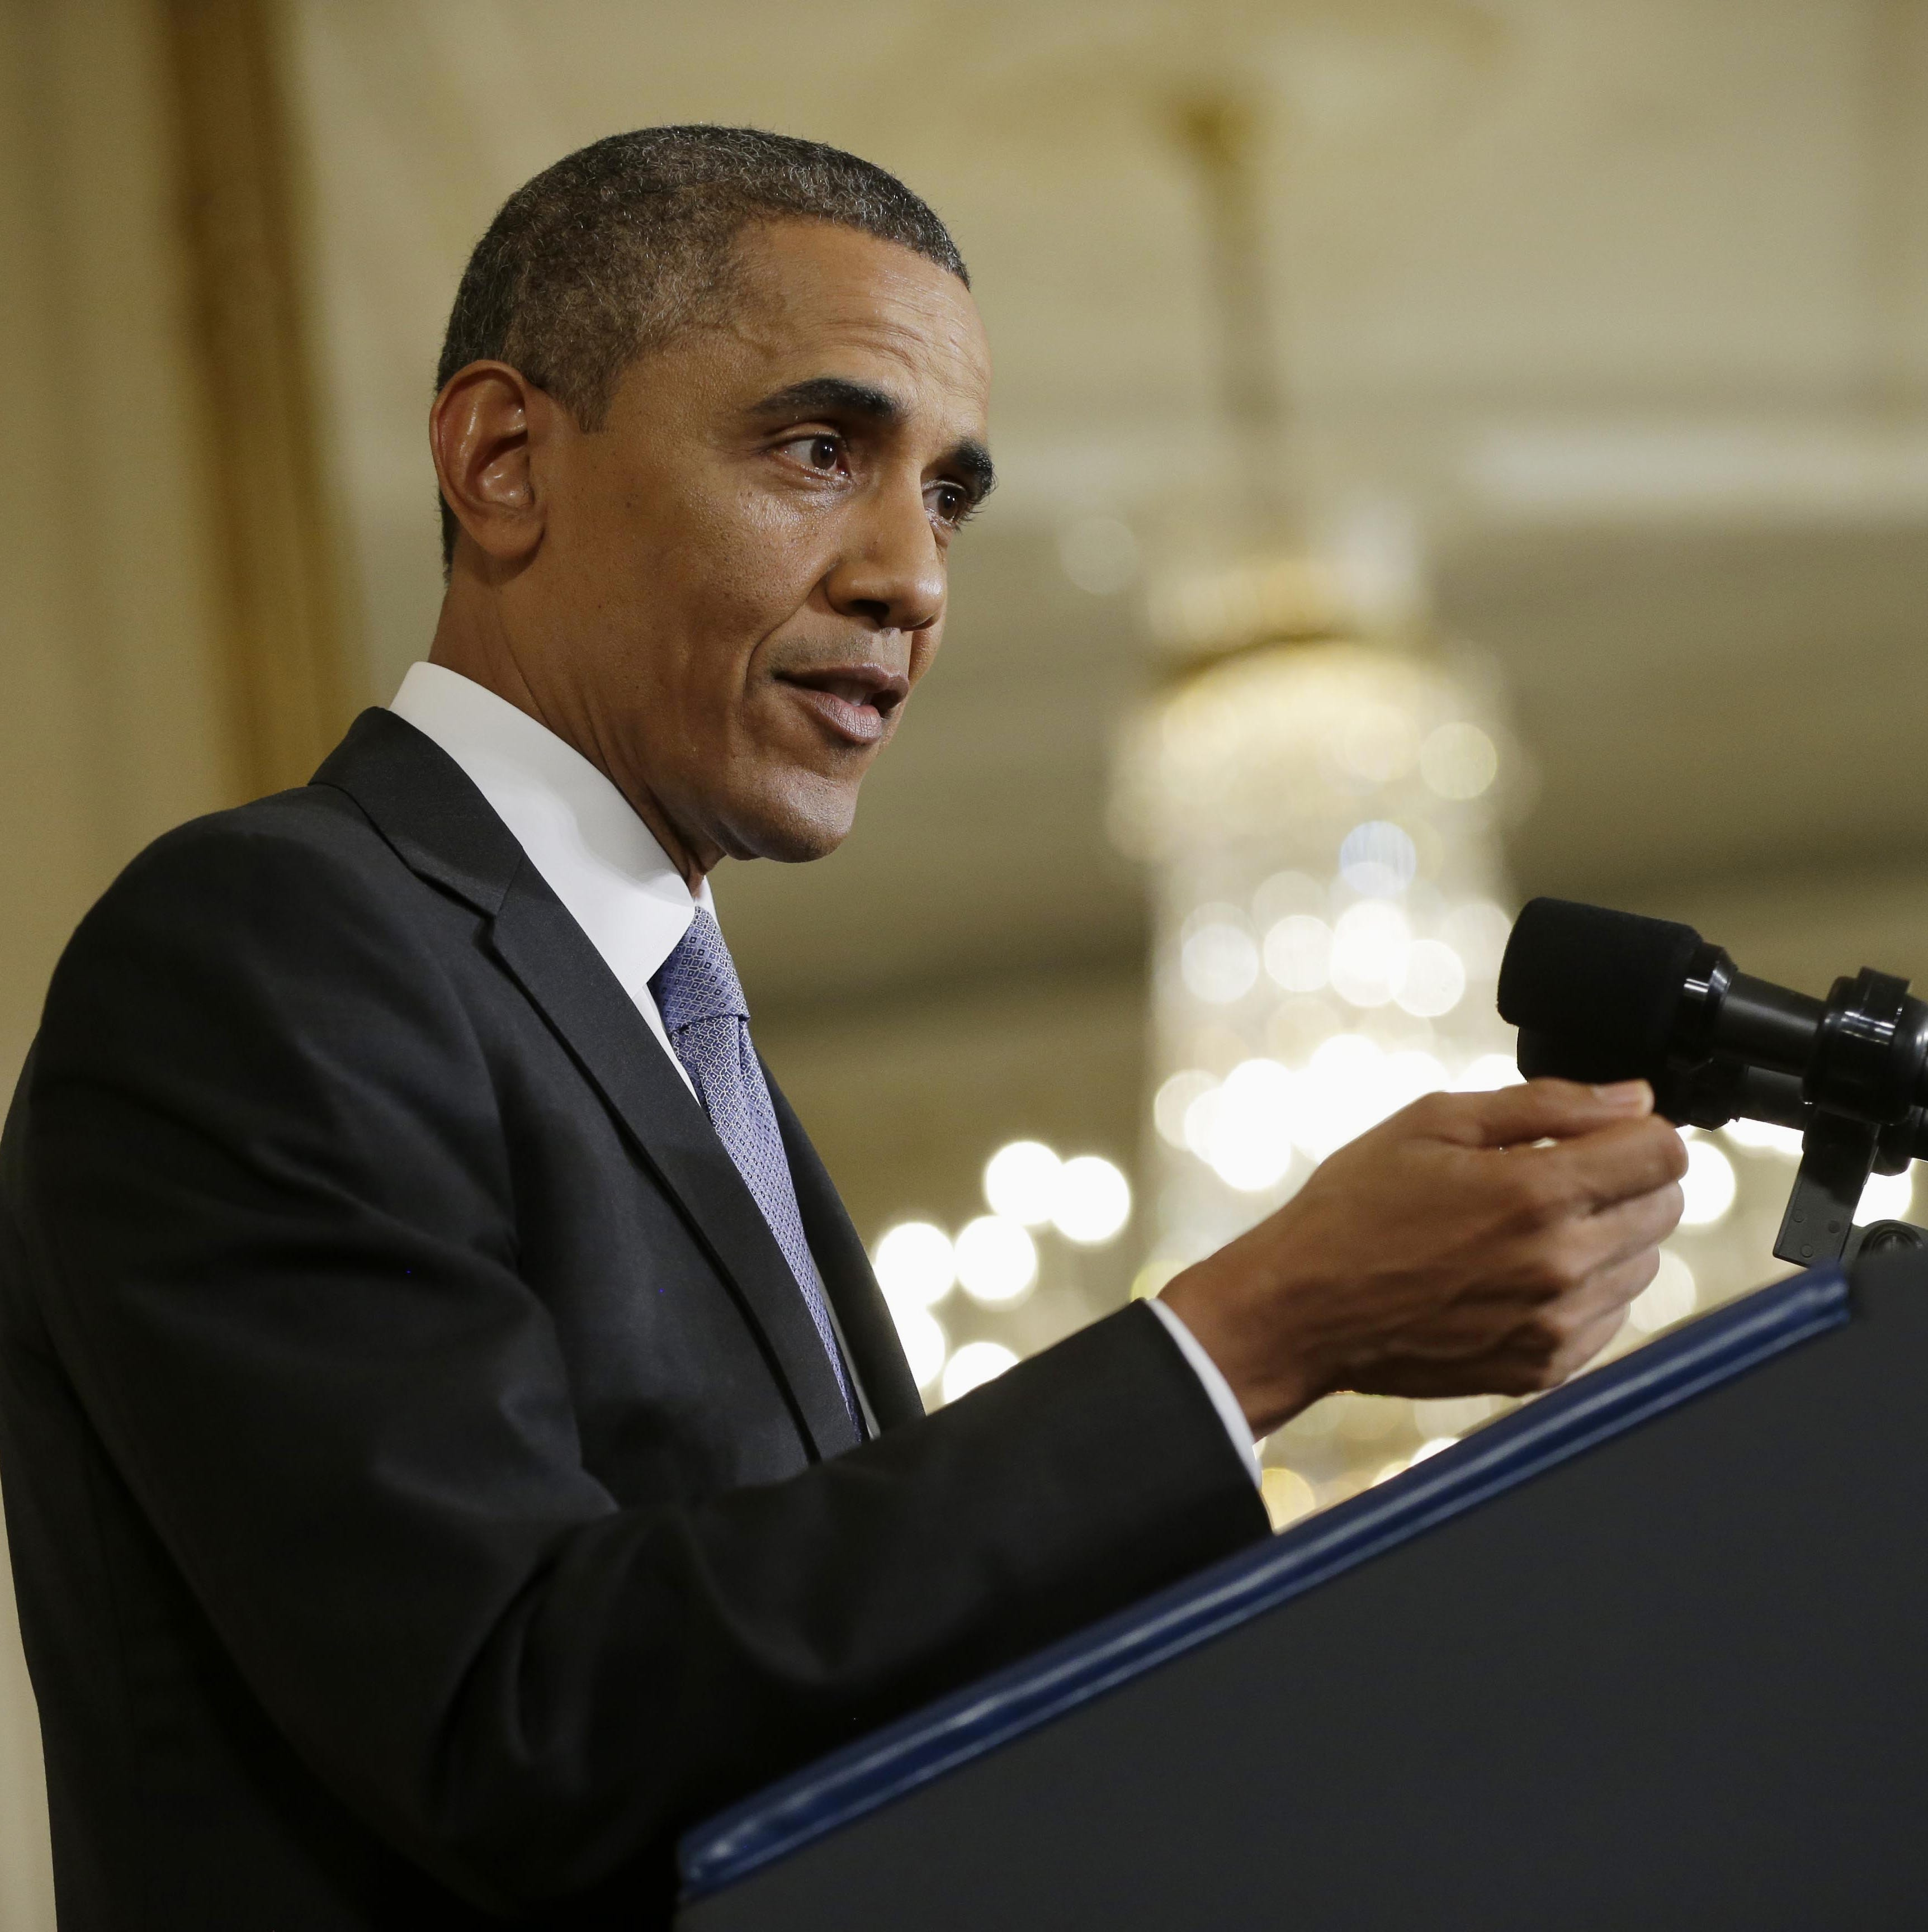 President Barack Obama gestures during his news conference in the East Room of the White House in Washington, Friday. The president said he'll work with Congress to change the oversight of some of the National Security Agency's controversial surveillance programs and name a new panel of outside experts to review technologies.